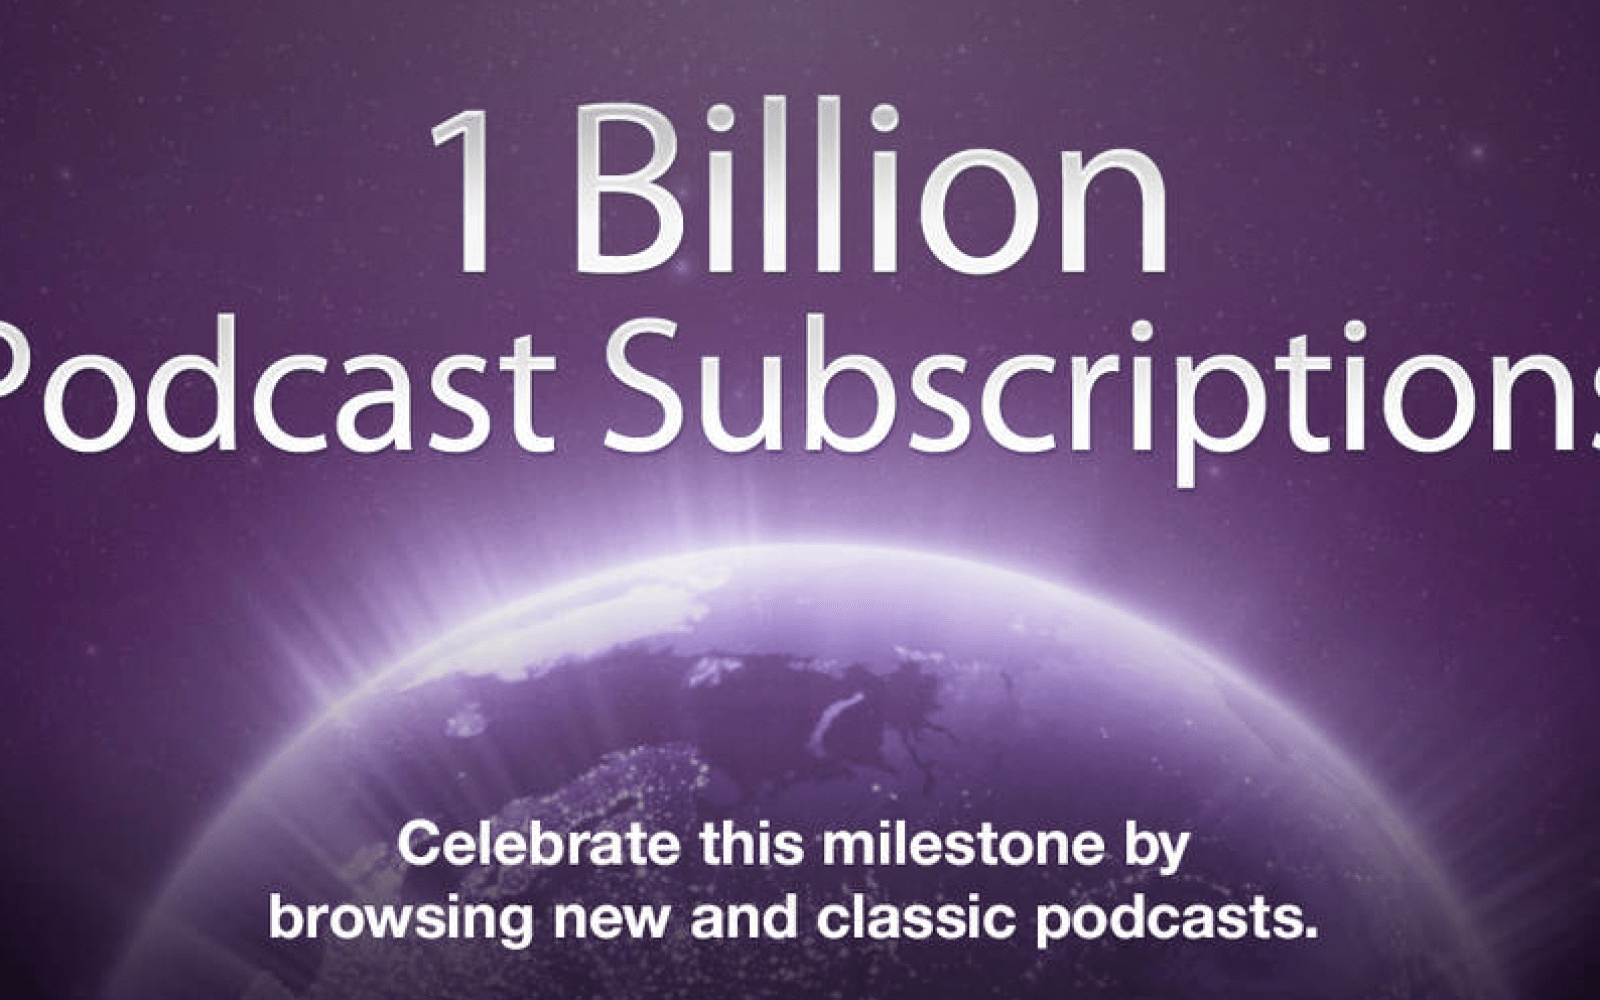 Apple says 1 billion podcasts subscribed to via iTunes